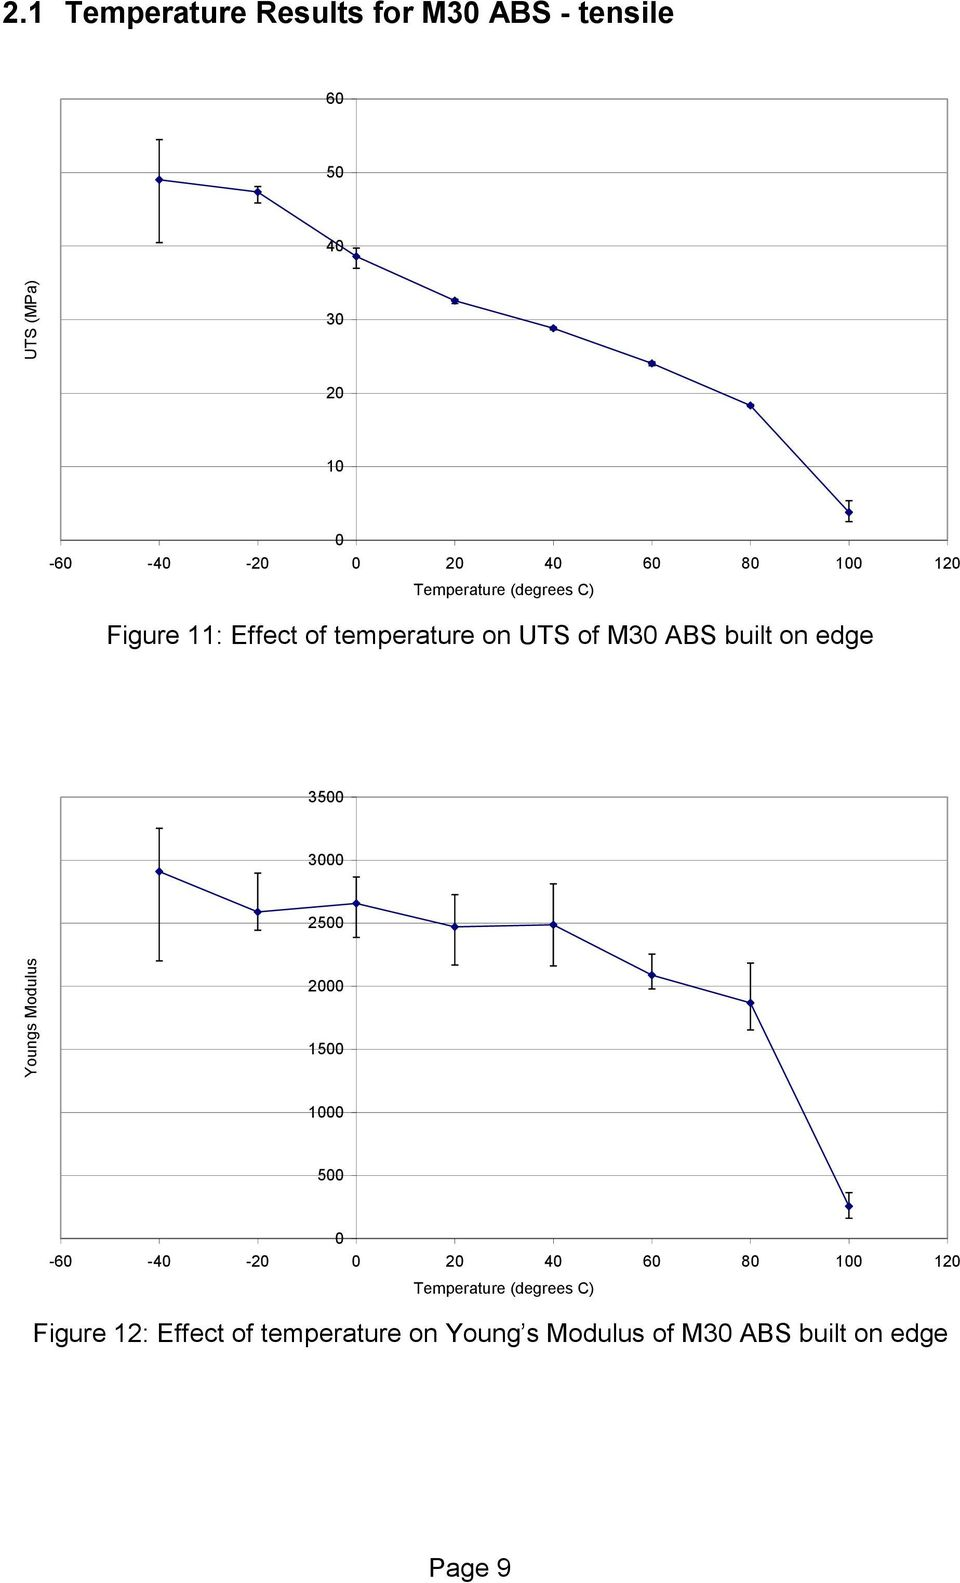 4 6 8 1 12 Figure 11: Effect of temperature on UTS of M3 ABS built on edge M3 ABS on